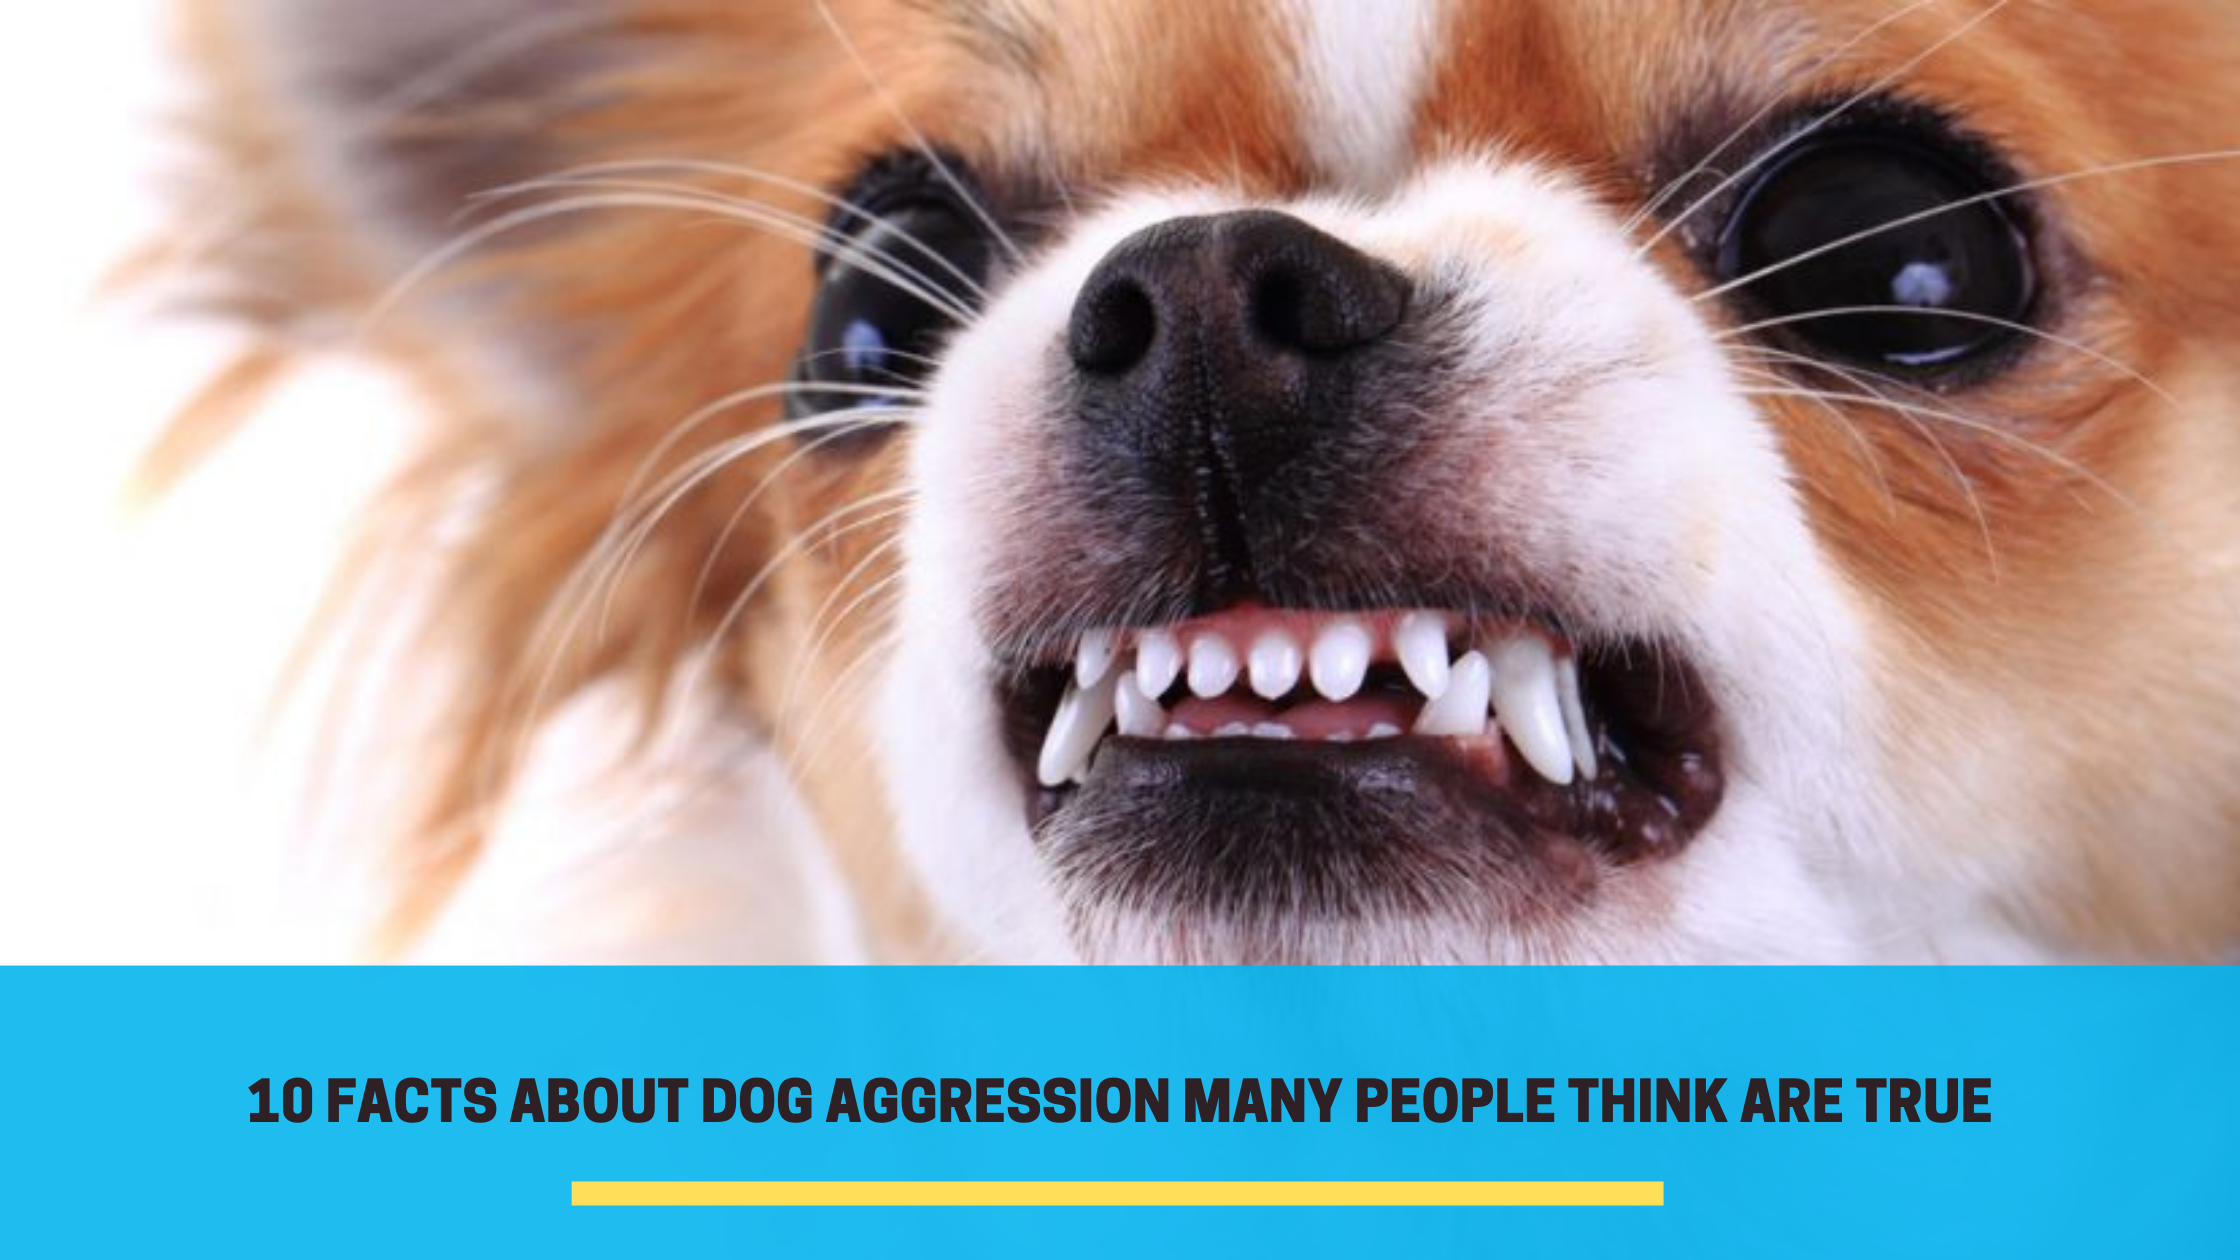 10 Facts About Dog Aggression Many People Think Are True